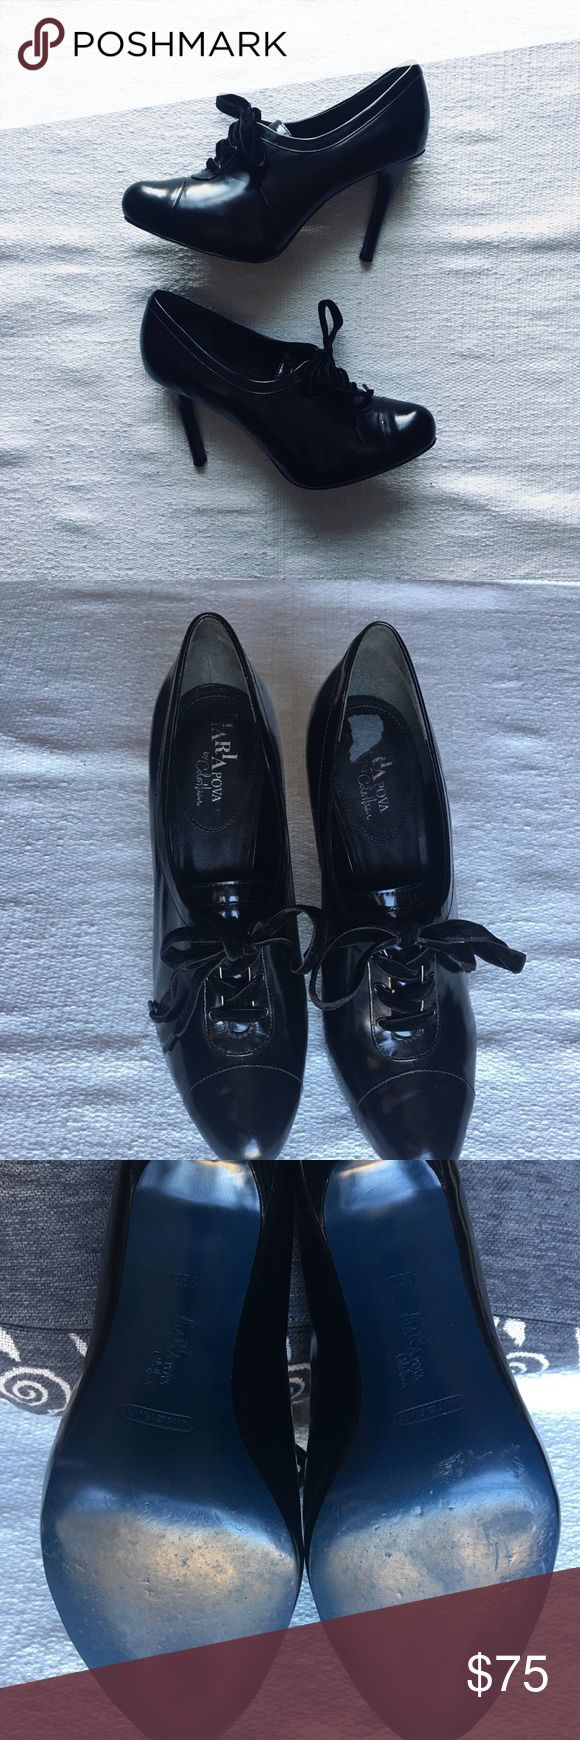 Cole Haan Boot Cole Haan Maria Sharapova Oxford Pump Size 9.5 /Nike Air comfort & 4 inch heel Velvet laces *small show of wear inside the left insole and small scuff (shown in photos) *worn only a few times/great condition! *no box Cole Haan Shoes Ankle Boots & Booties